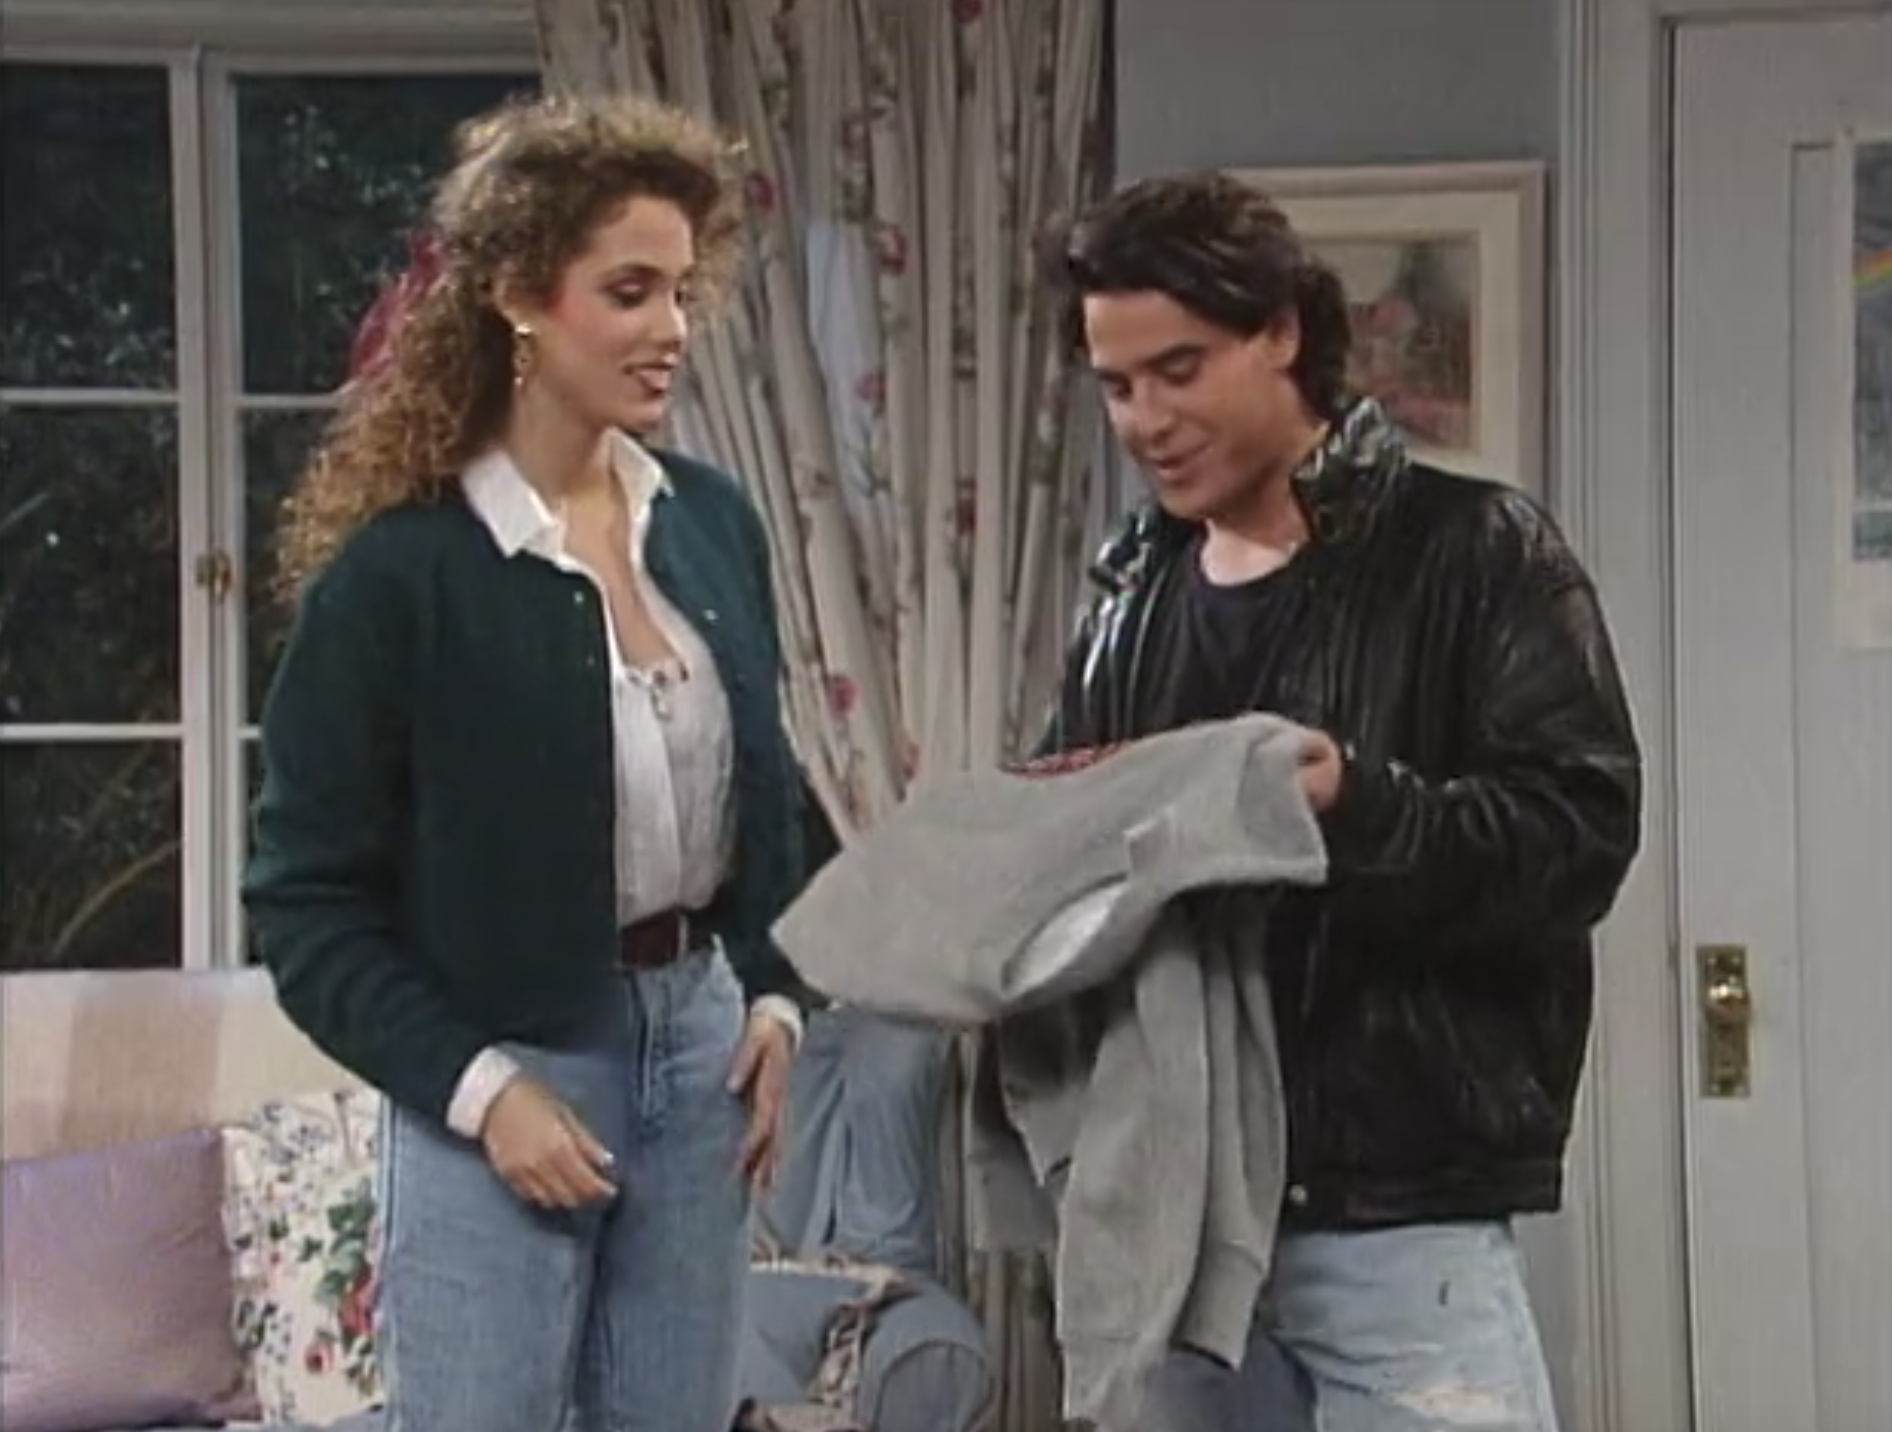 Eric and Jessie talking in a bedroom as he holds a sweater